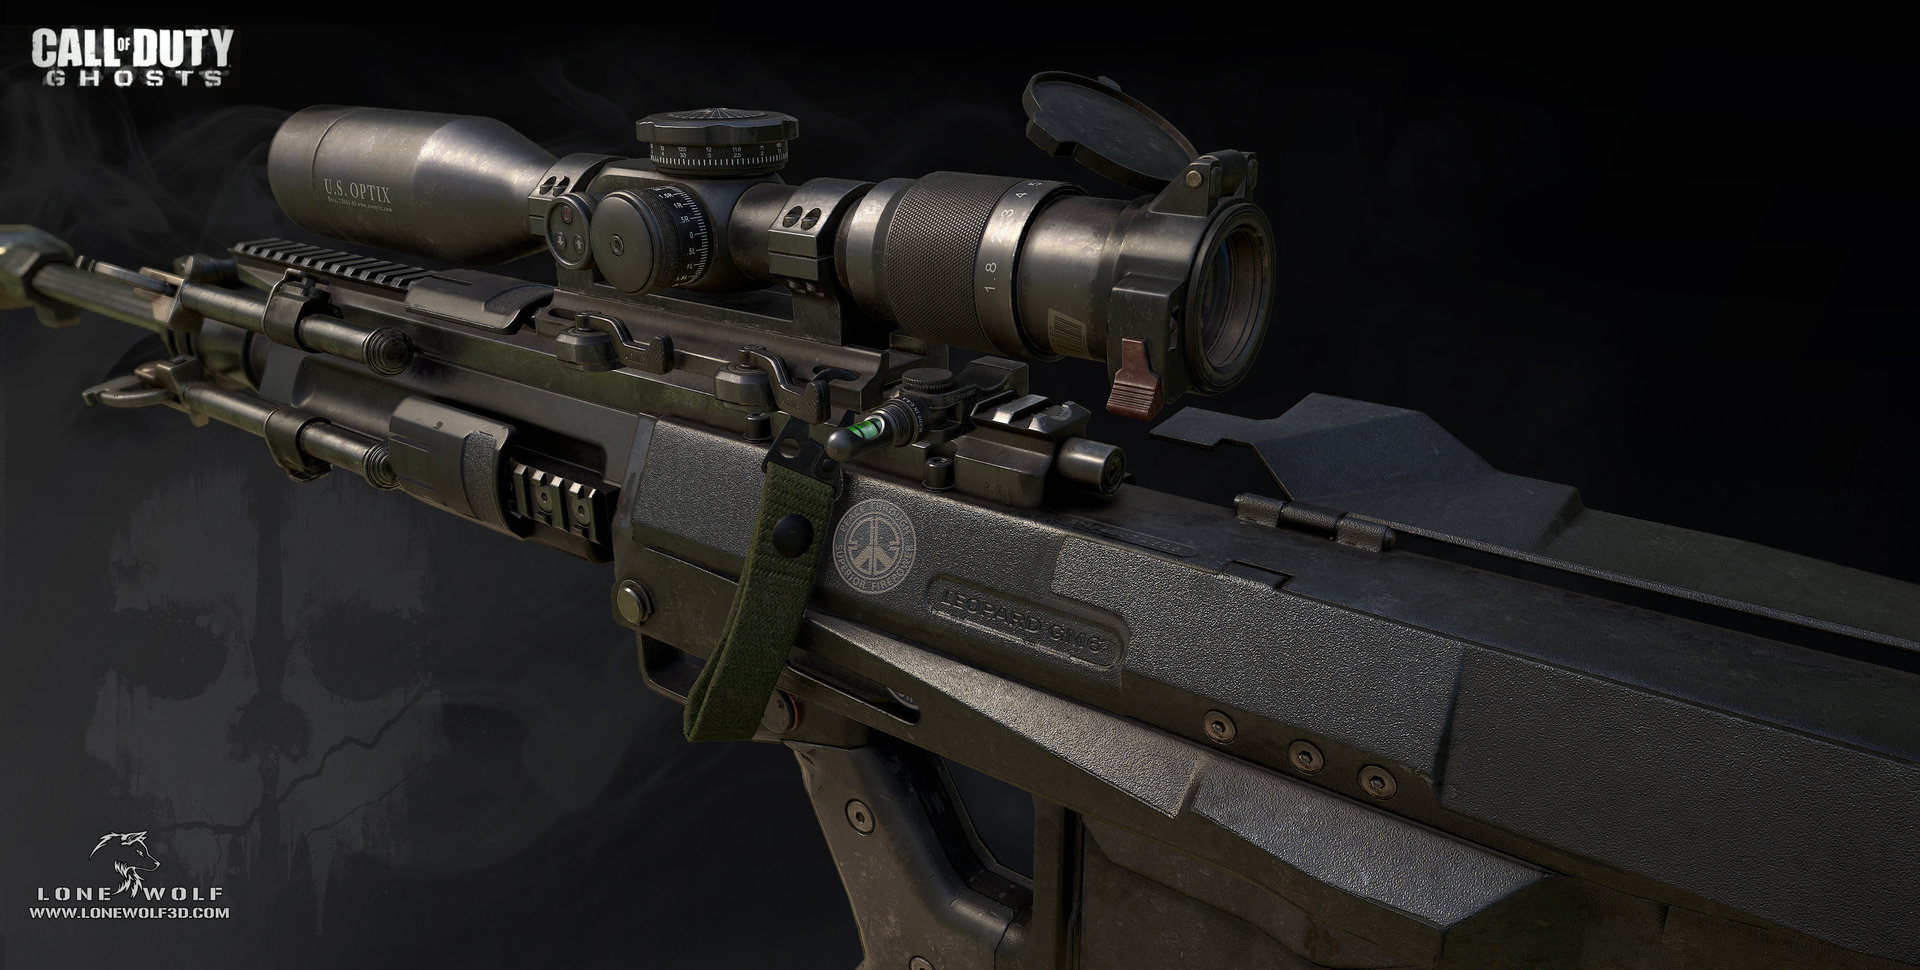 Reno levi call of duty ghosts call of duty ghosts gm6 model 02 voltagebd Choice Image